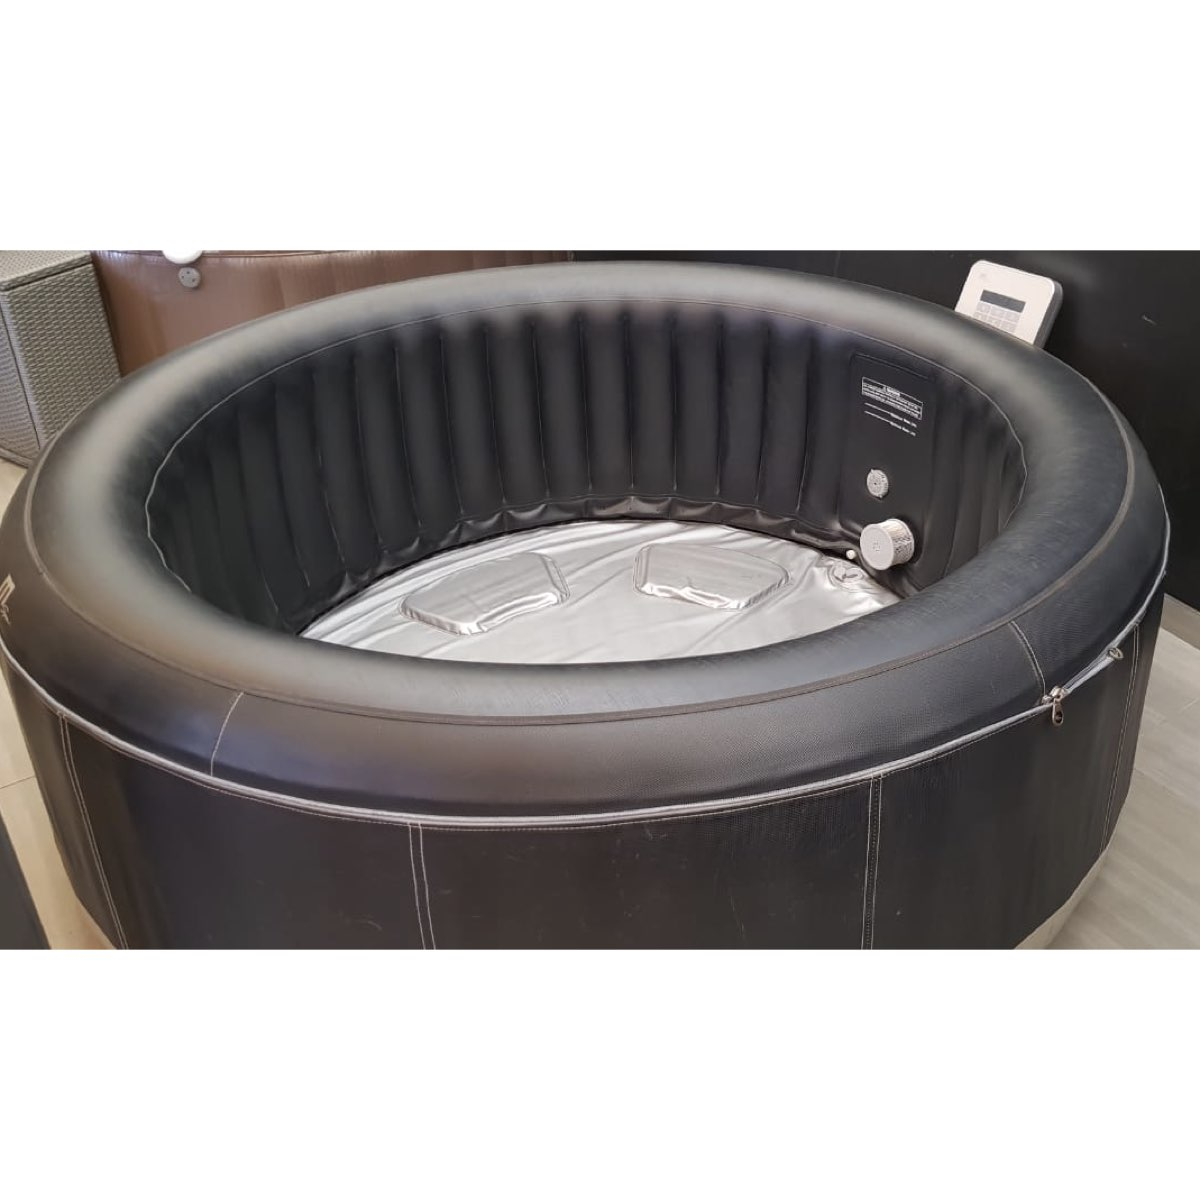 Jacuzzi Inflable Chile.Jacuzzi Inflable Camaro Premium 6 Personas